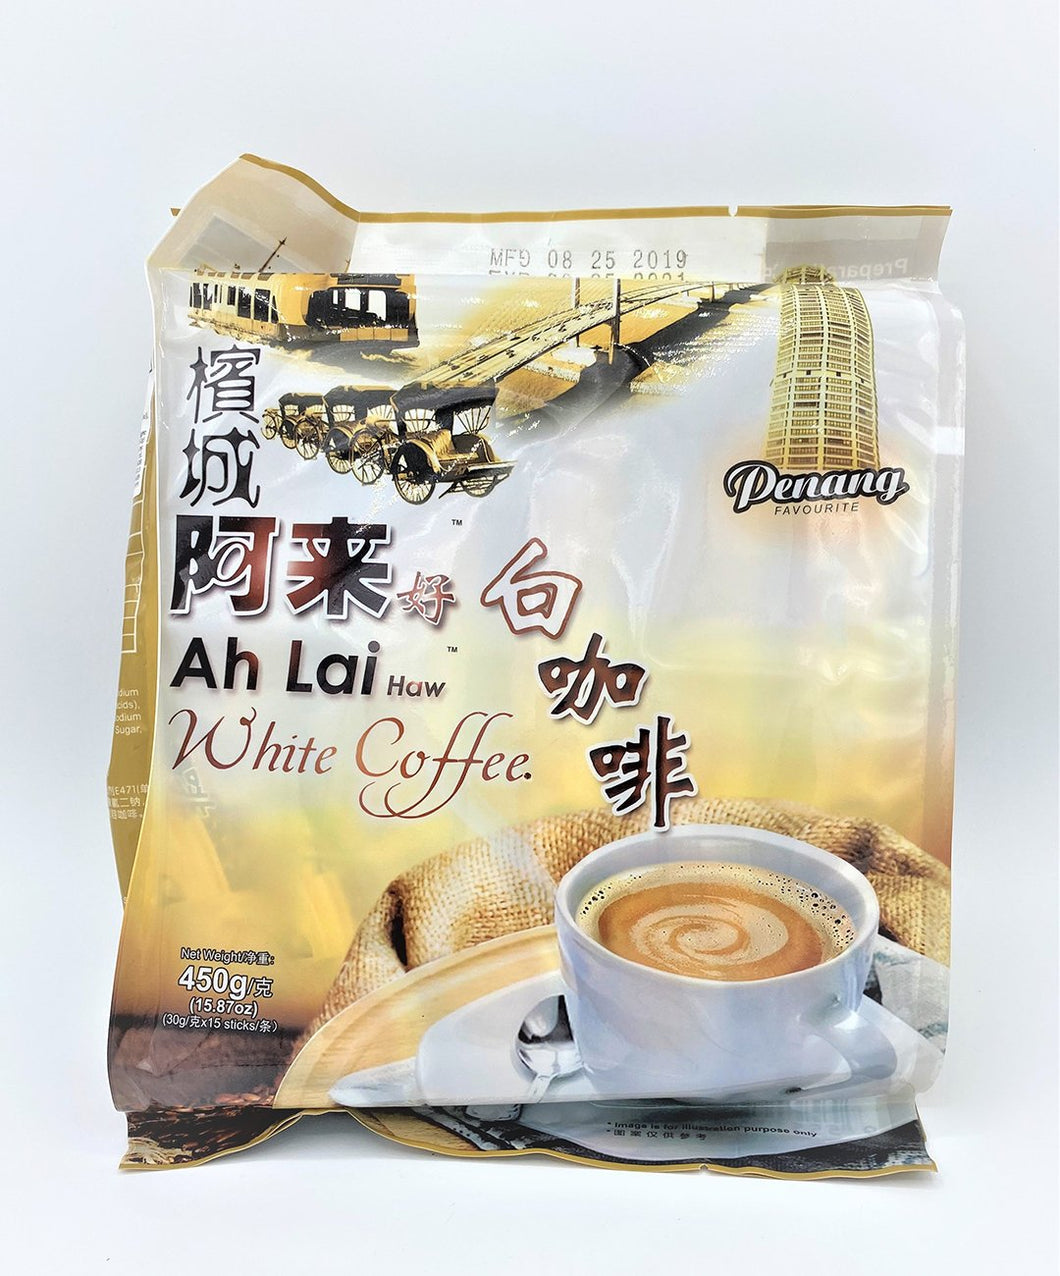 Ah Lai White Instant Coffee